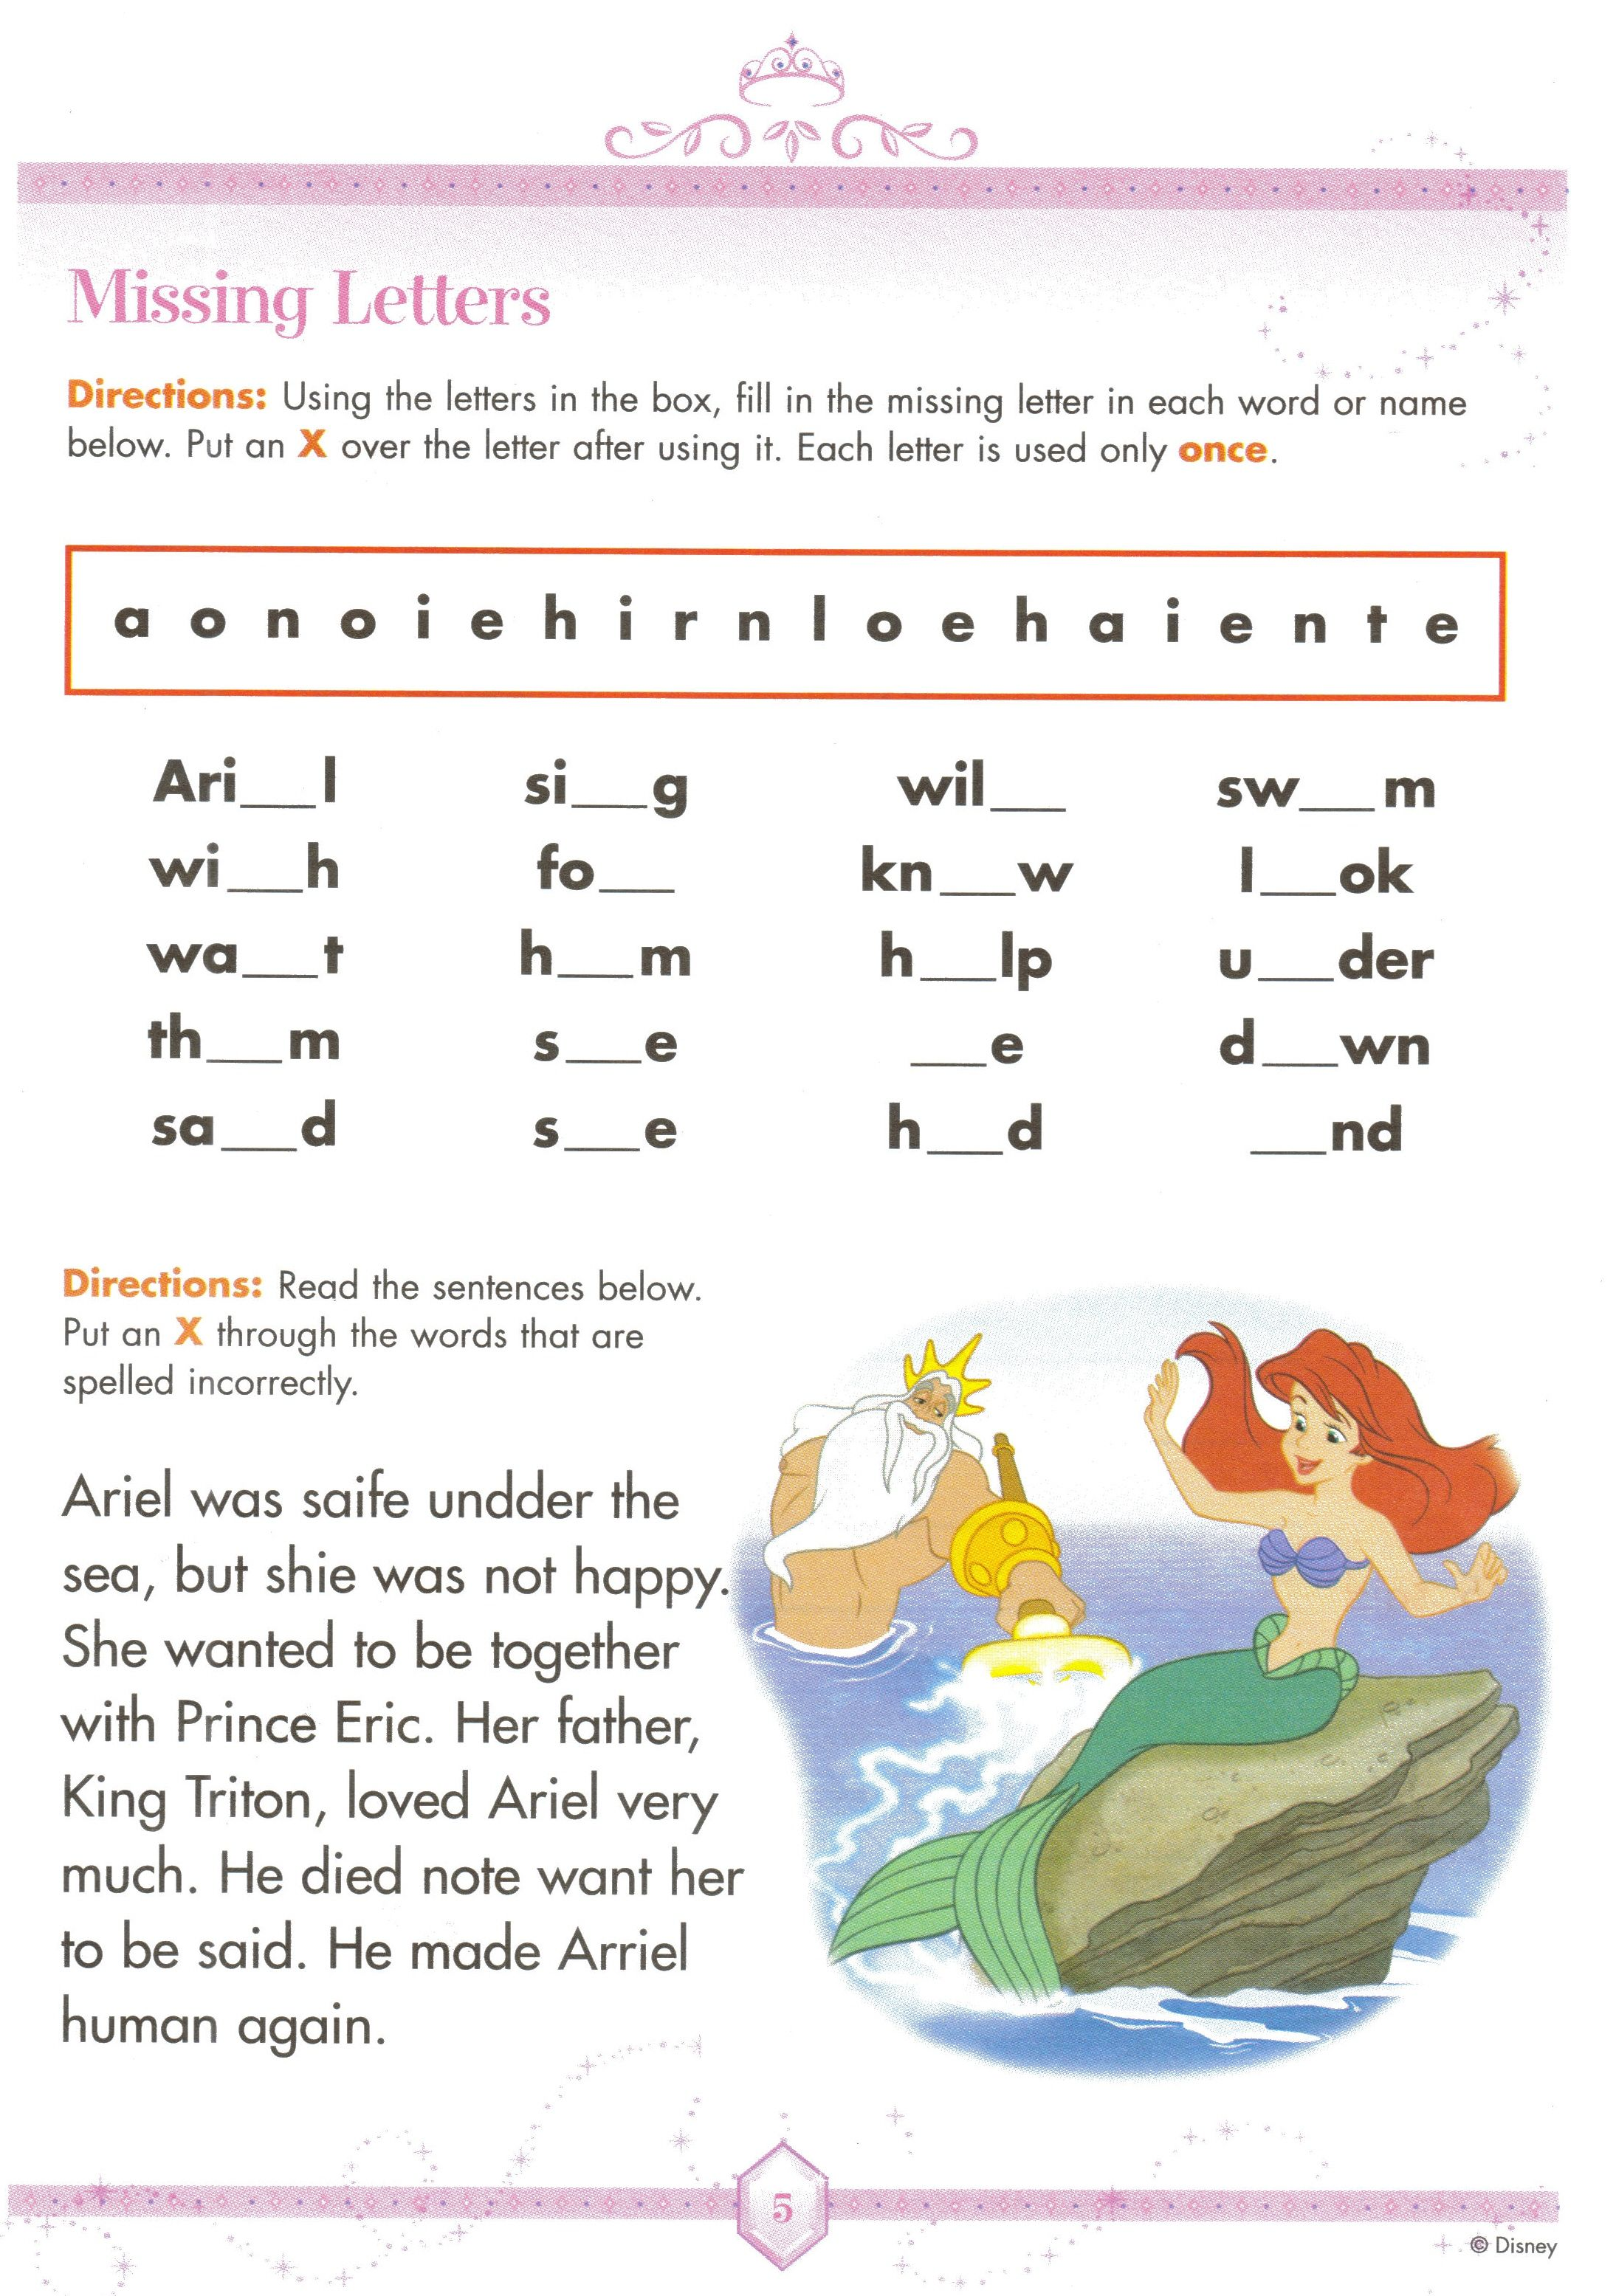 Disney Stationary Disney Learning Worksheets Kt Ariel Missing Letters Worksheet 5